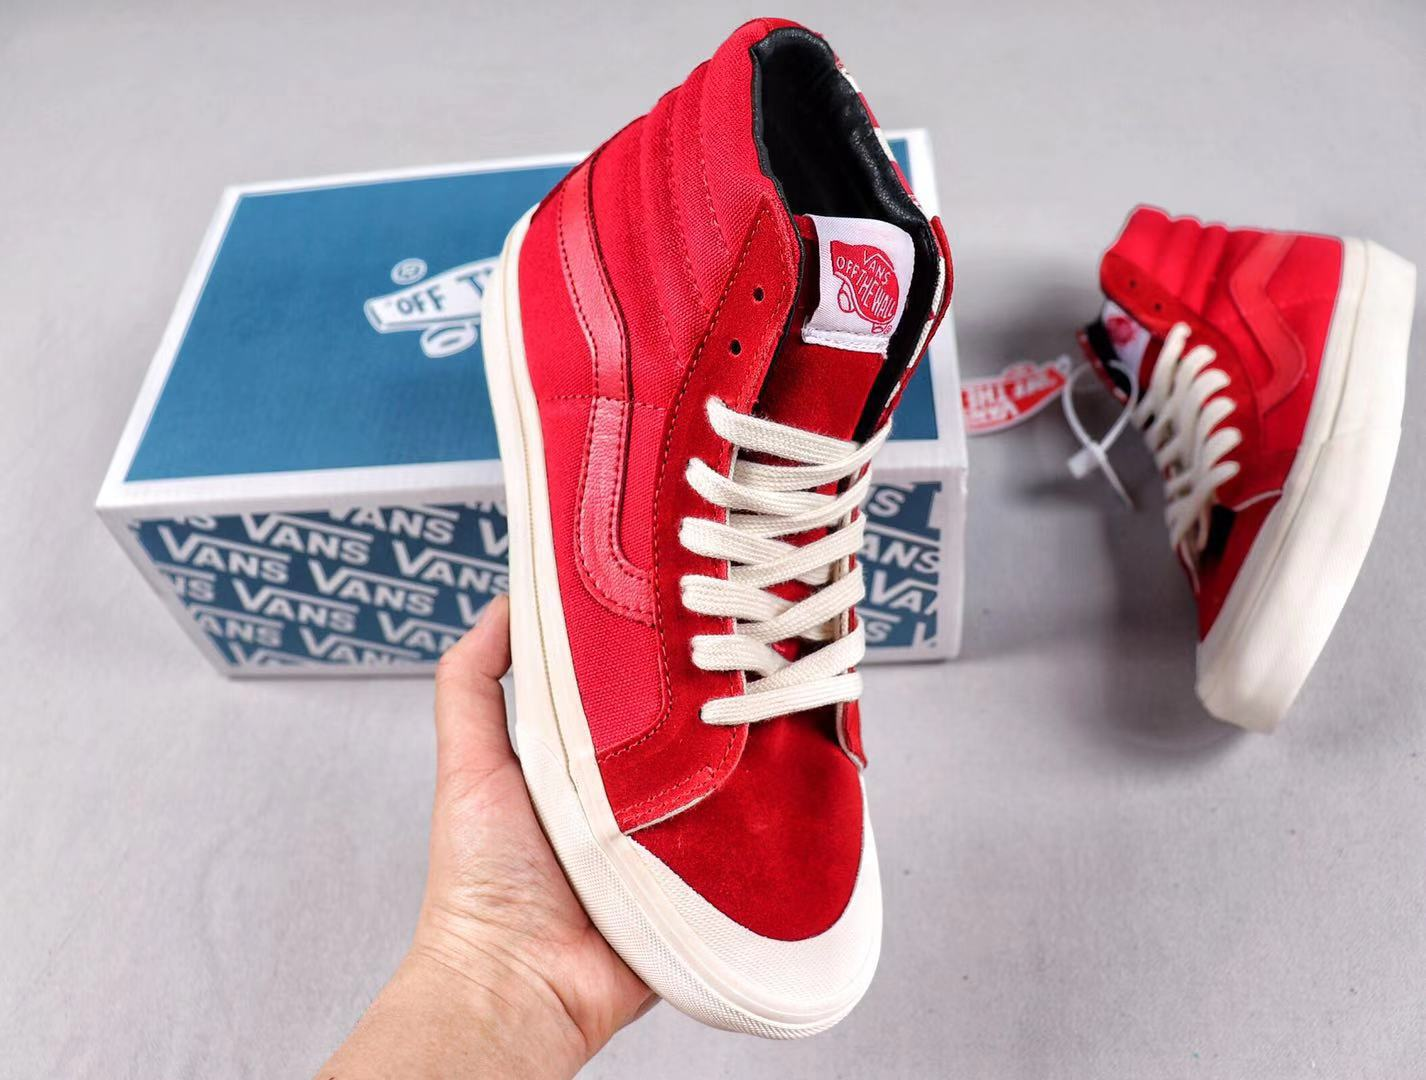 Vans OG Style 138 LX Racing Red/Checkerboard-White New Style Sneakers